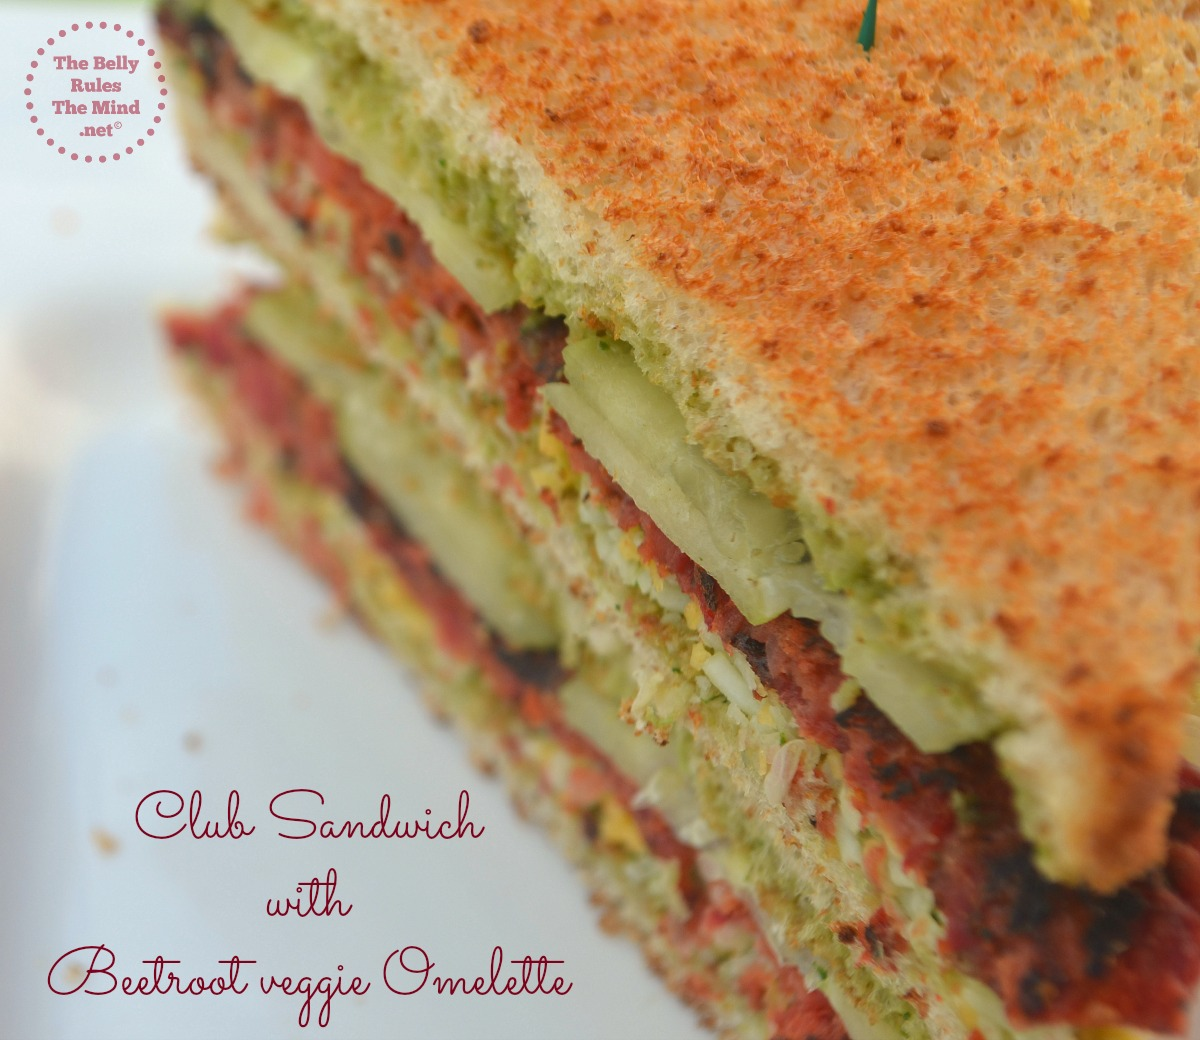 Club Sandwich with Beetroot veggie Omelette